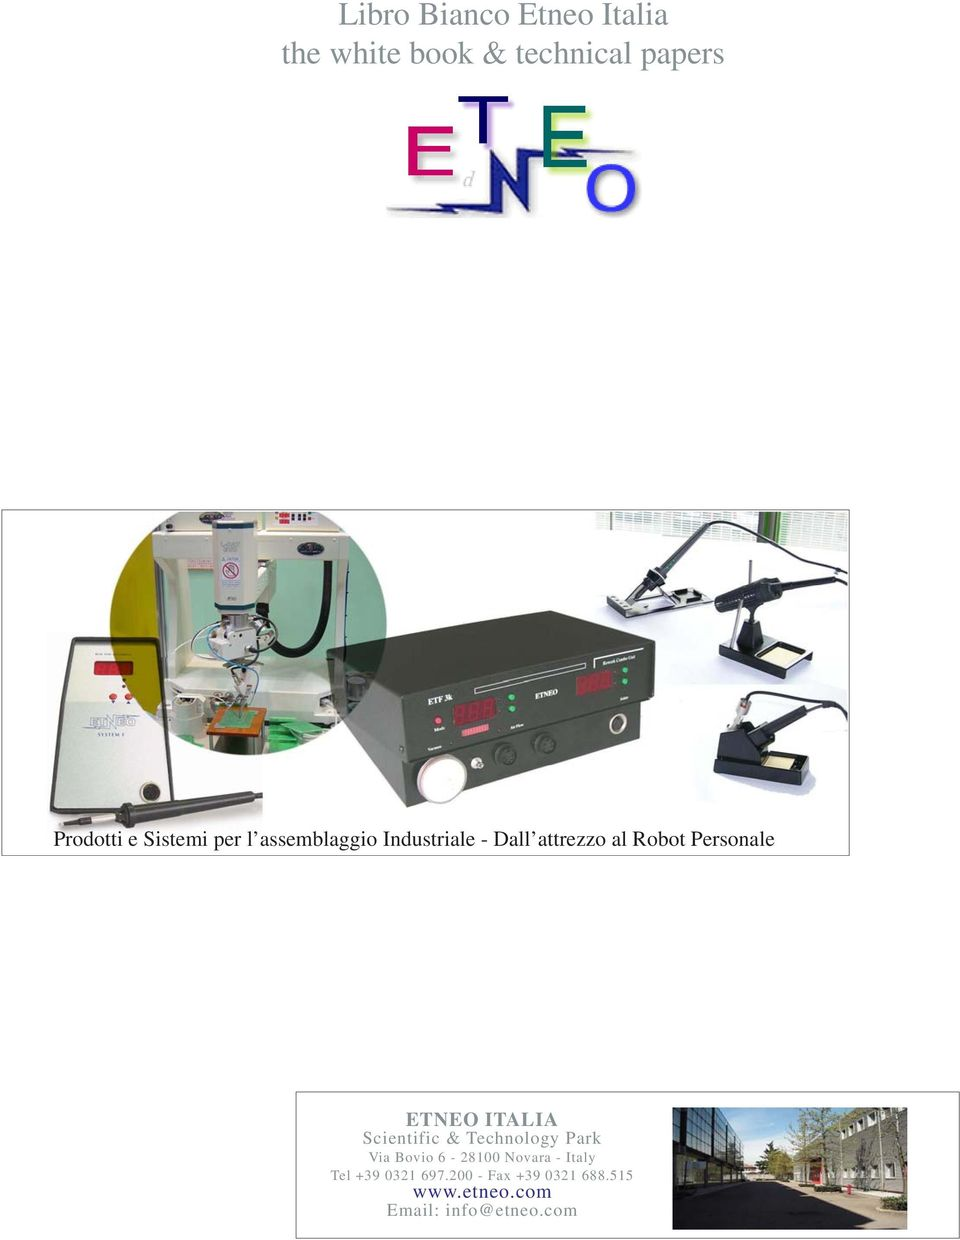 ETNEO ITALIA Scientific & Technology Park Via Bovio 6-28100 Novara - Italy